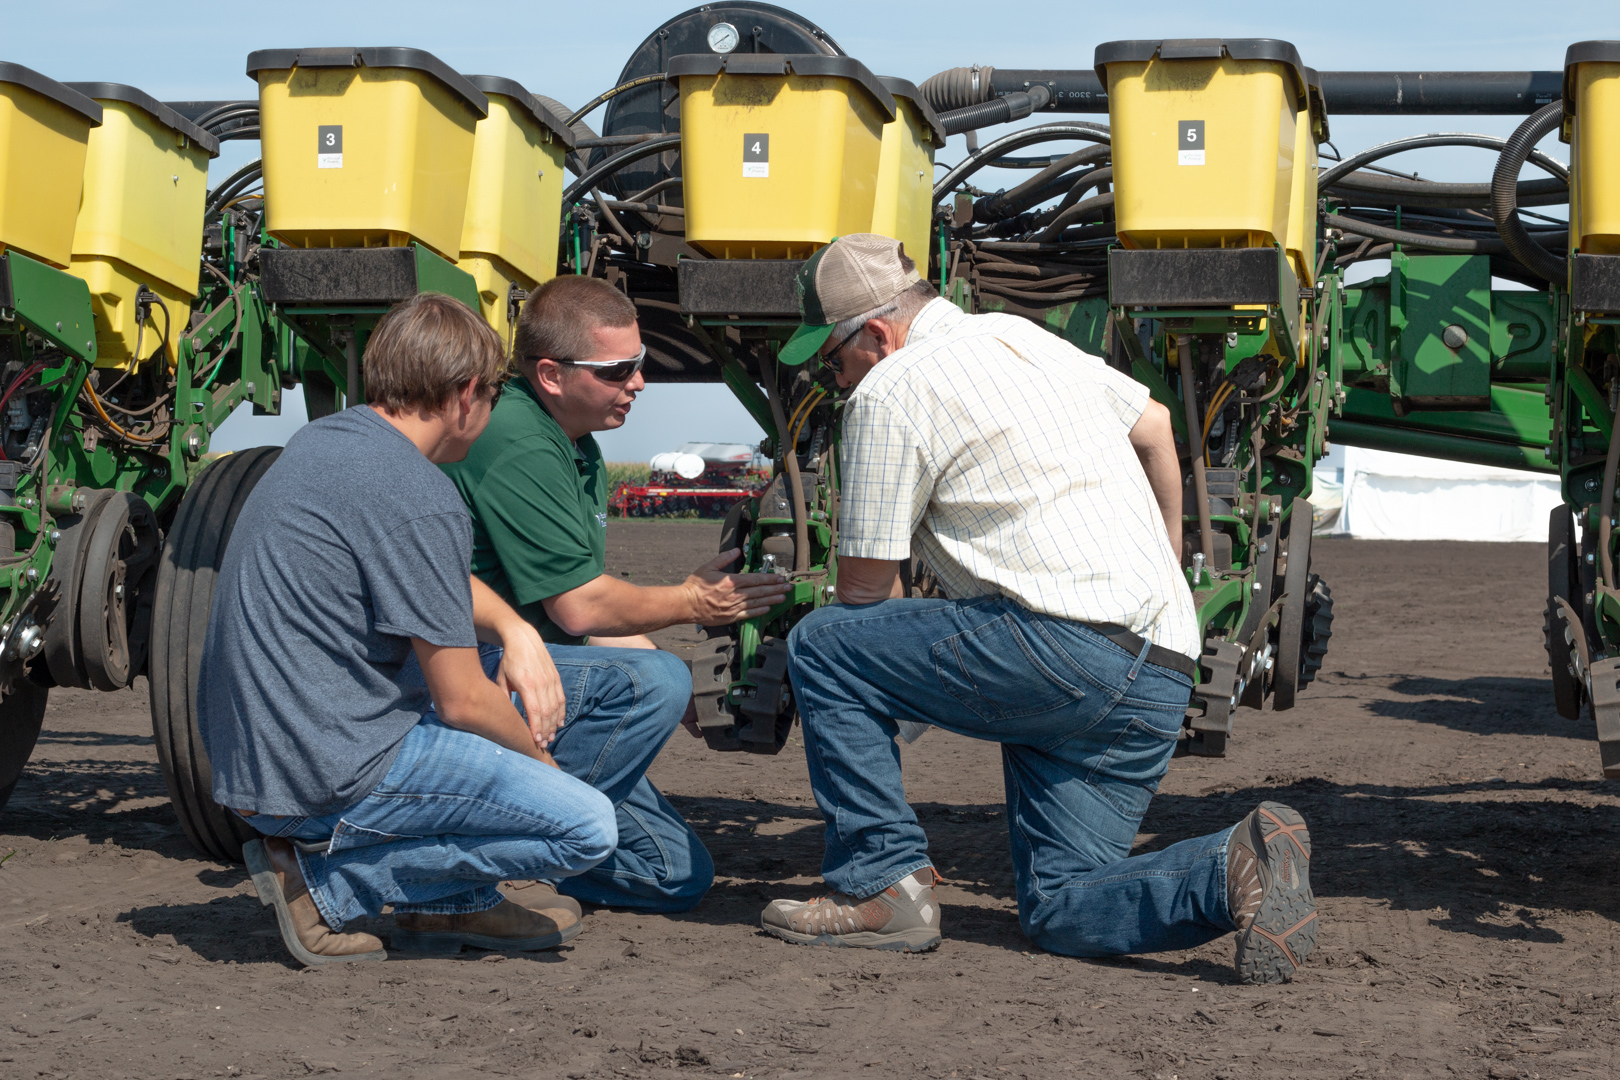 Farmers behind a planter looking at technology.